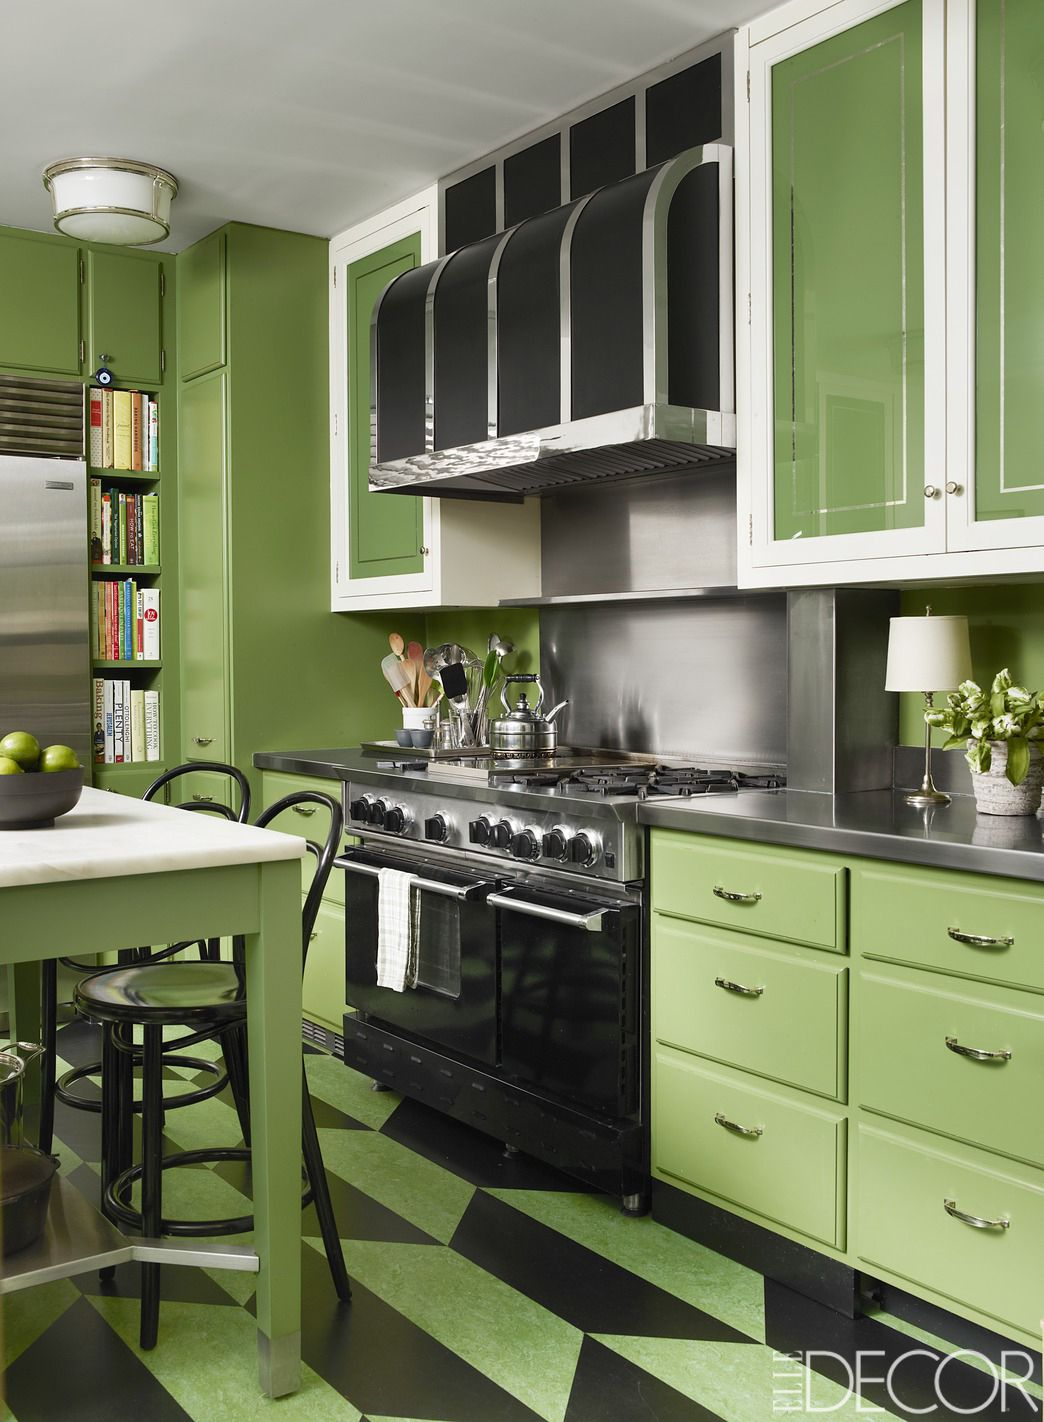 Decorating Ideas Kitchen 20 green kitchen design ideas - paint colors for green kitchens